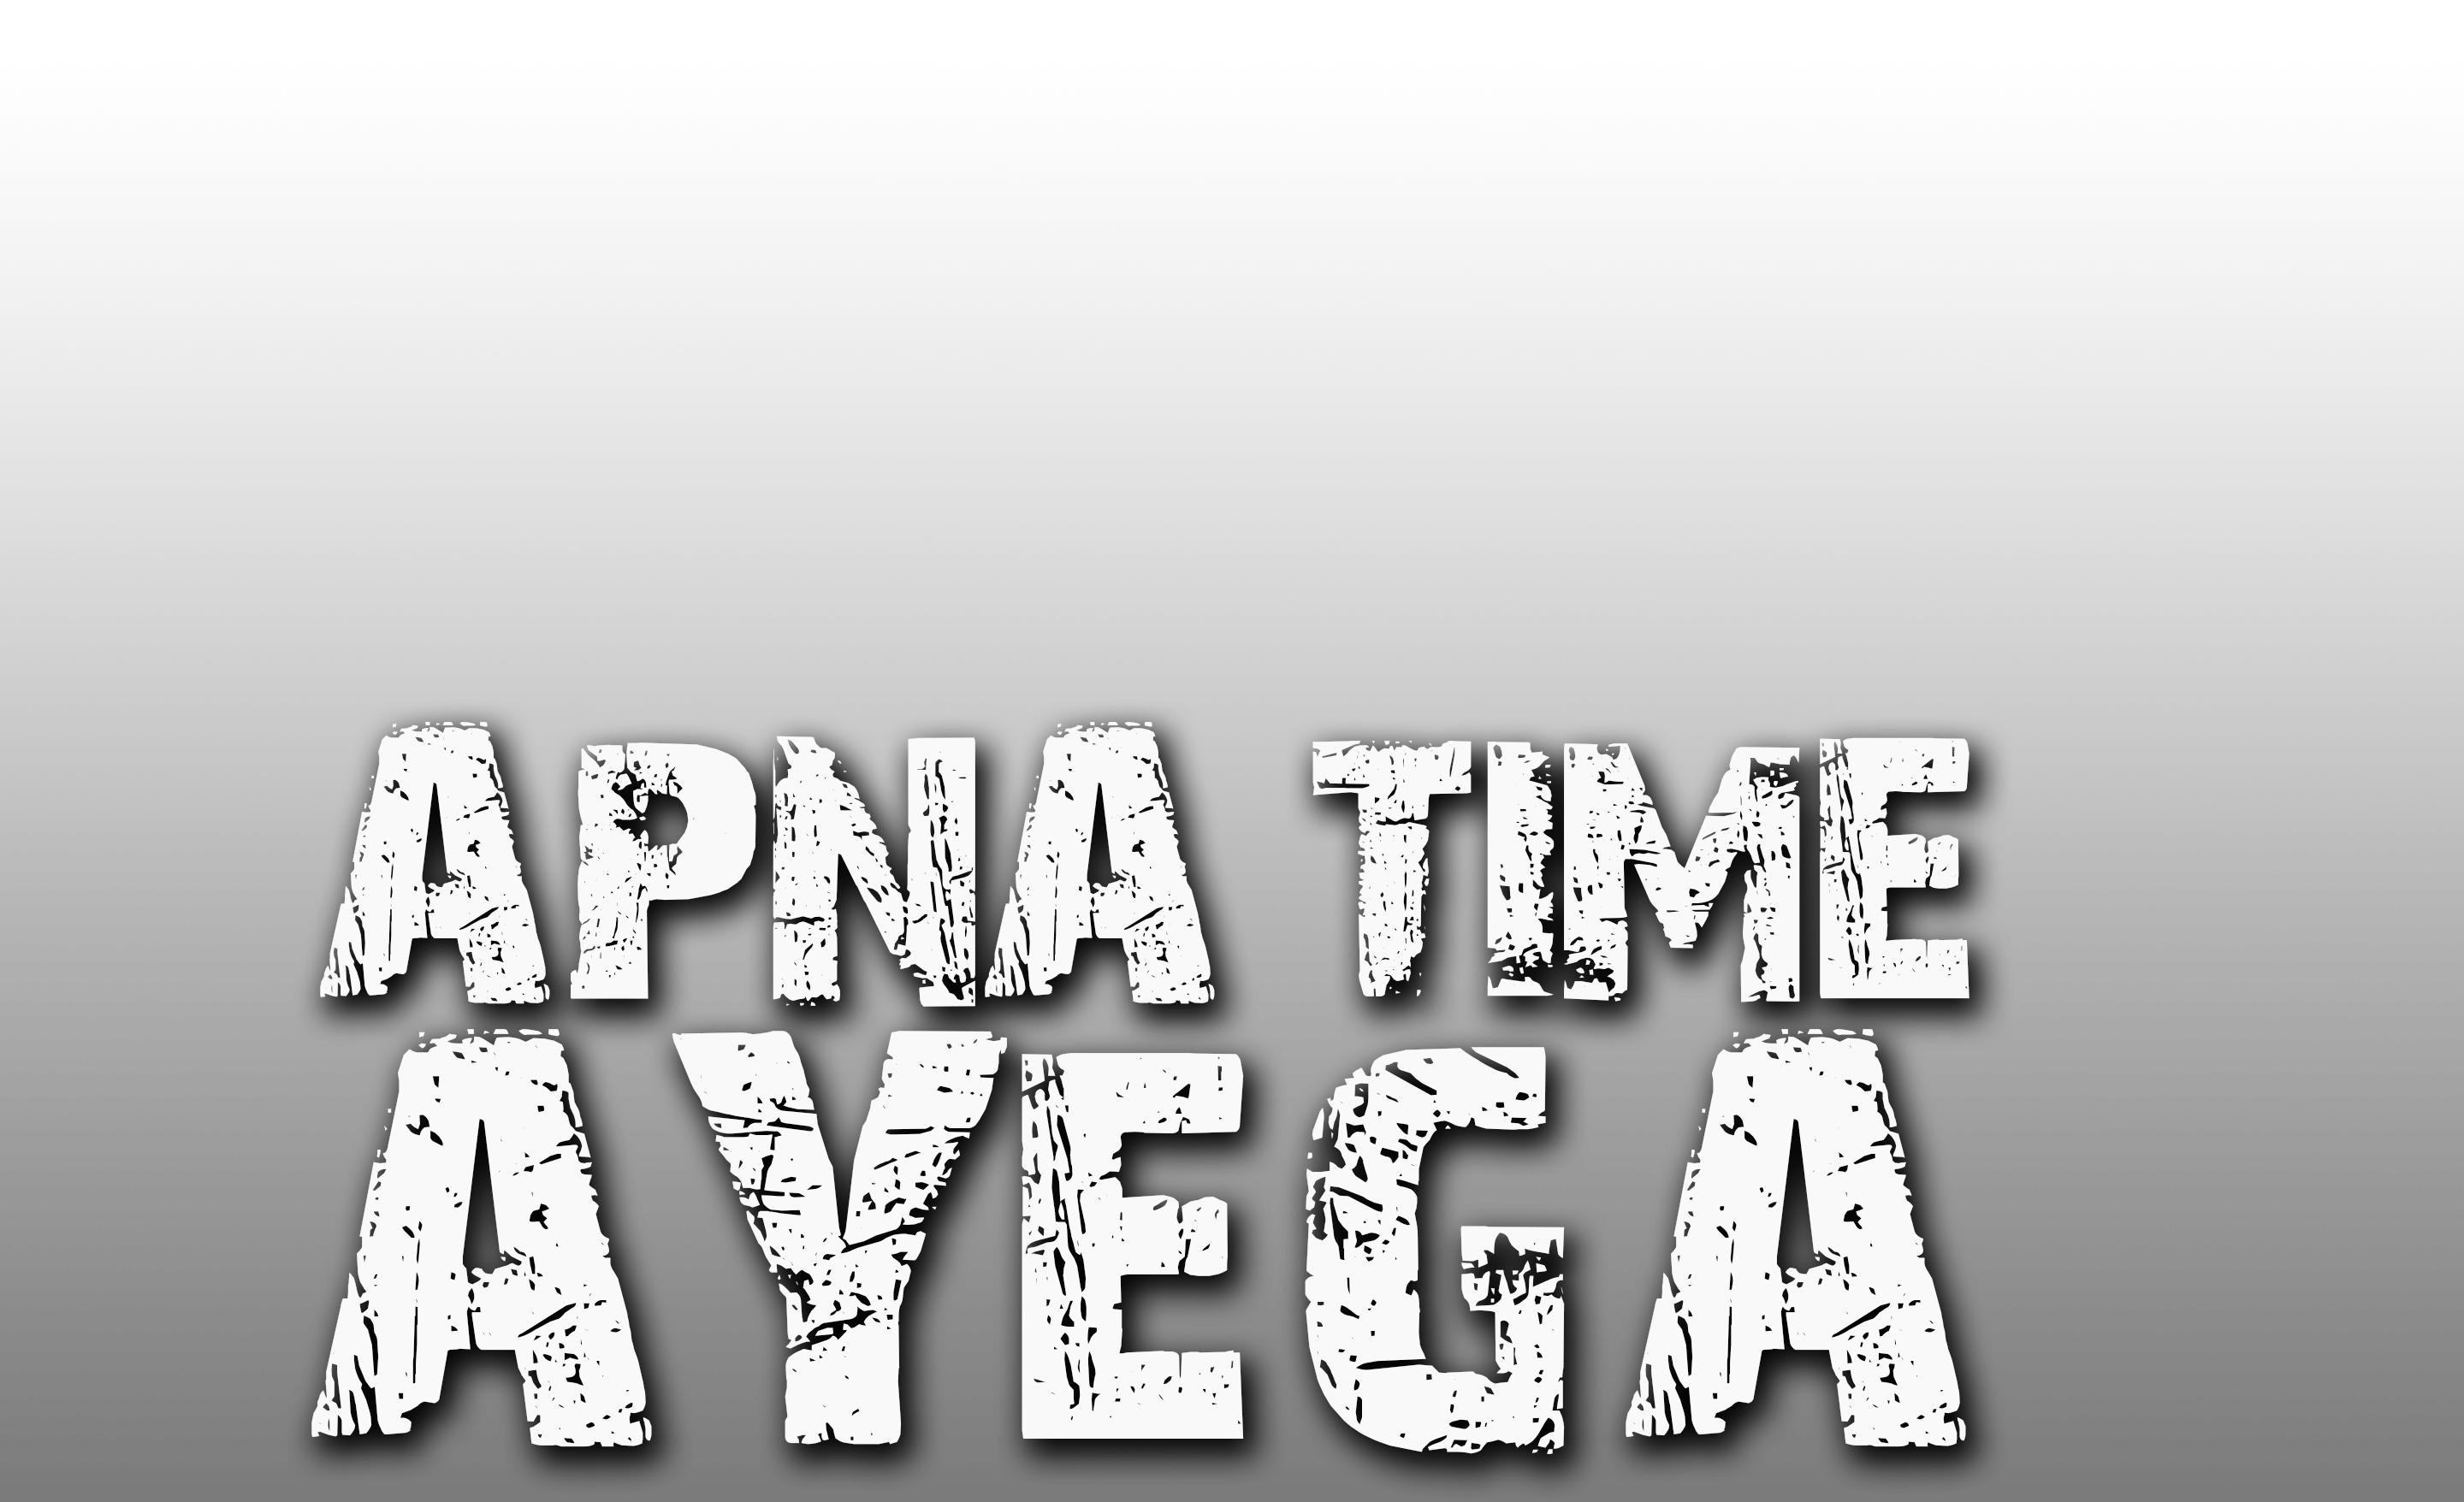 apna time aega text pngapna time aega text png